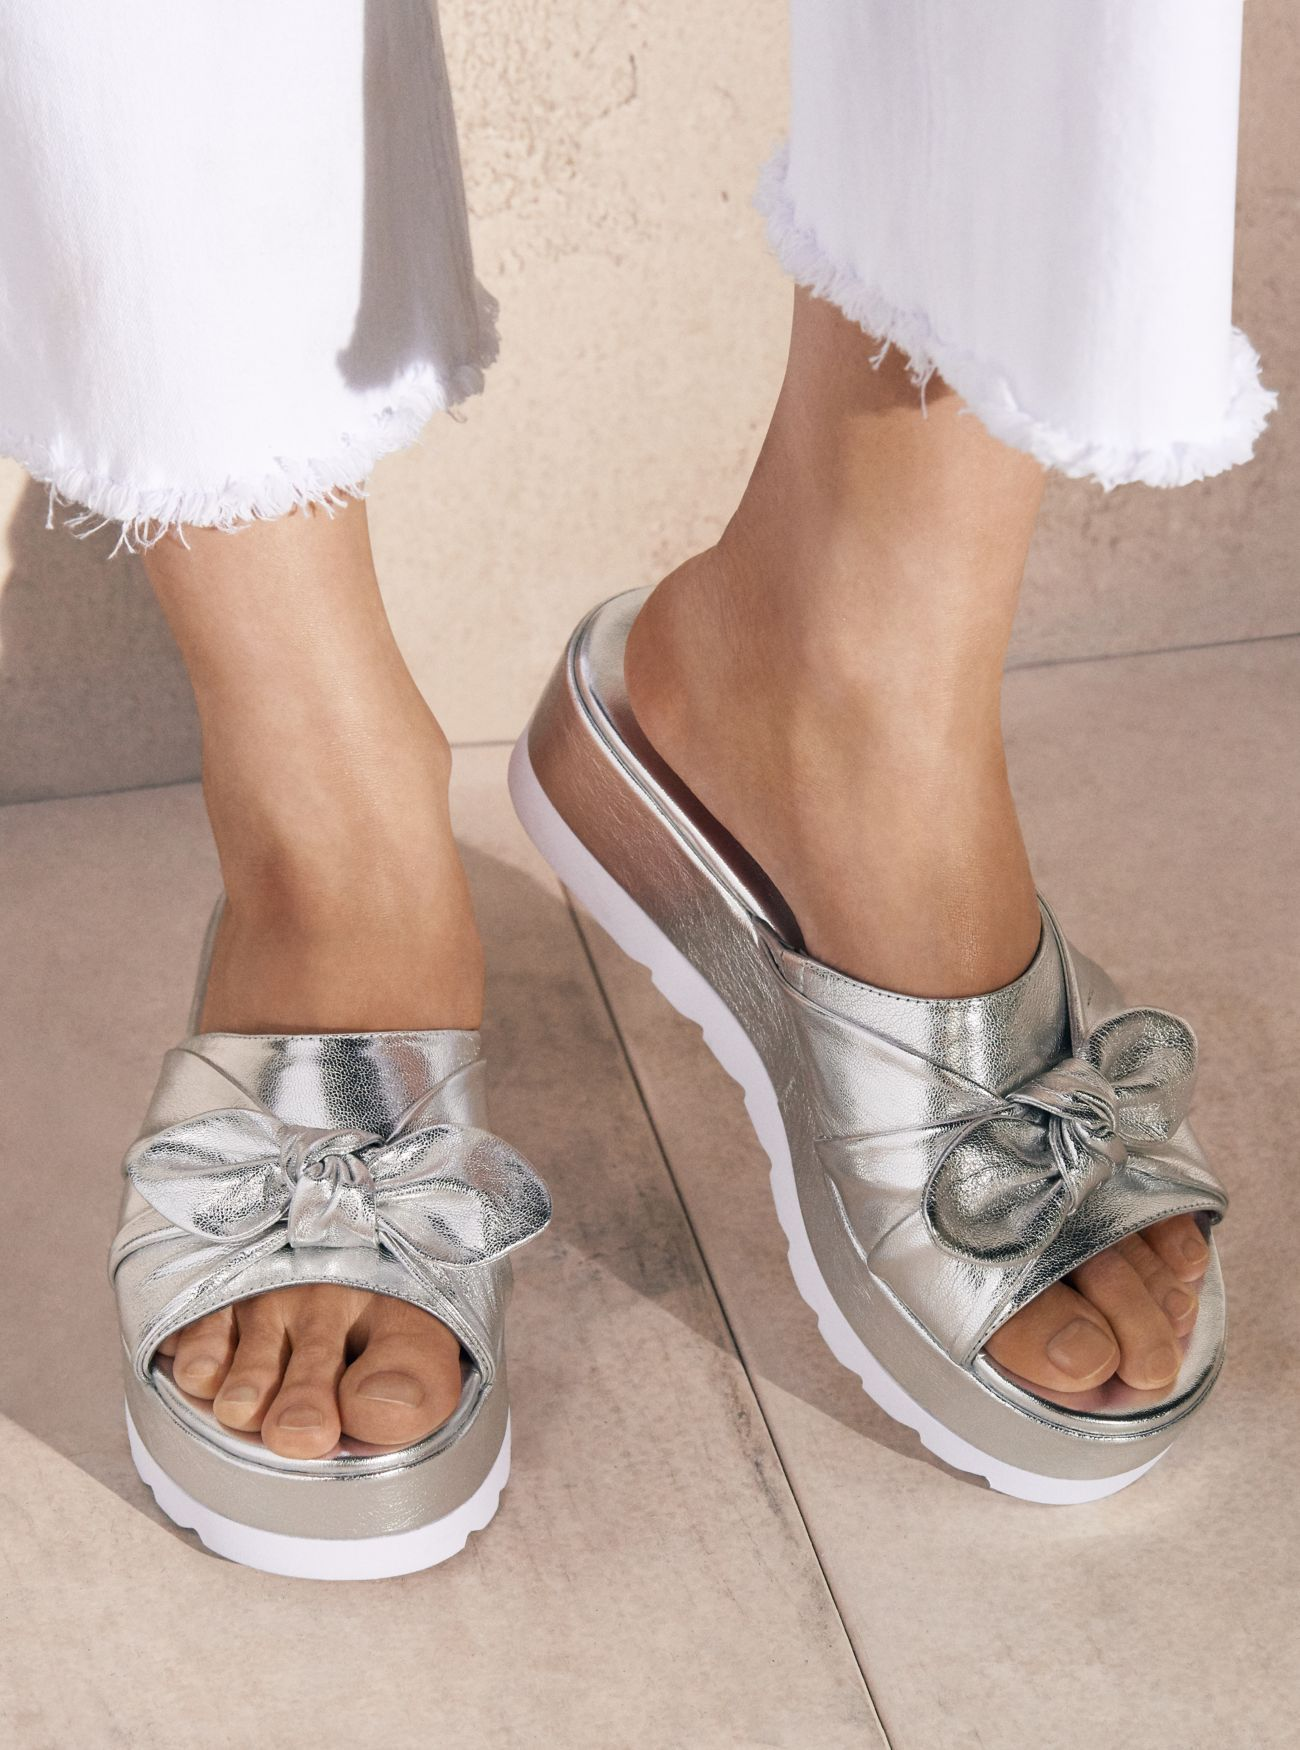 86efbb174c7 ... sandals on the official Michael Kors site. Pippa Metallic Leather  Platform Slide